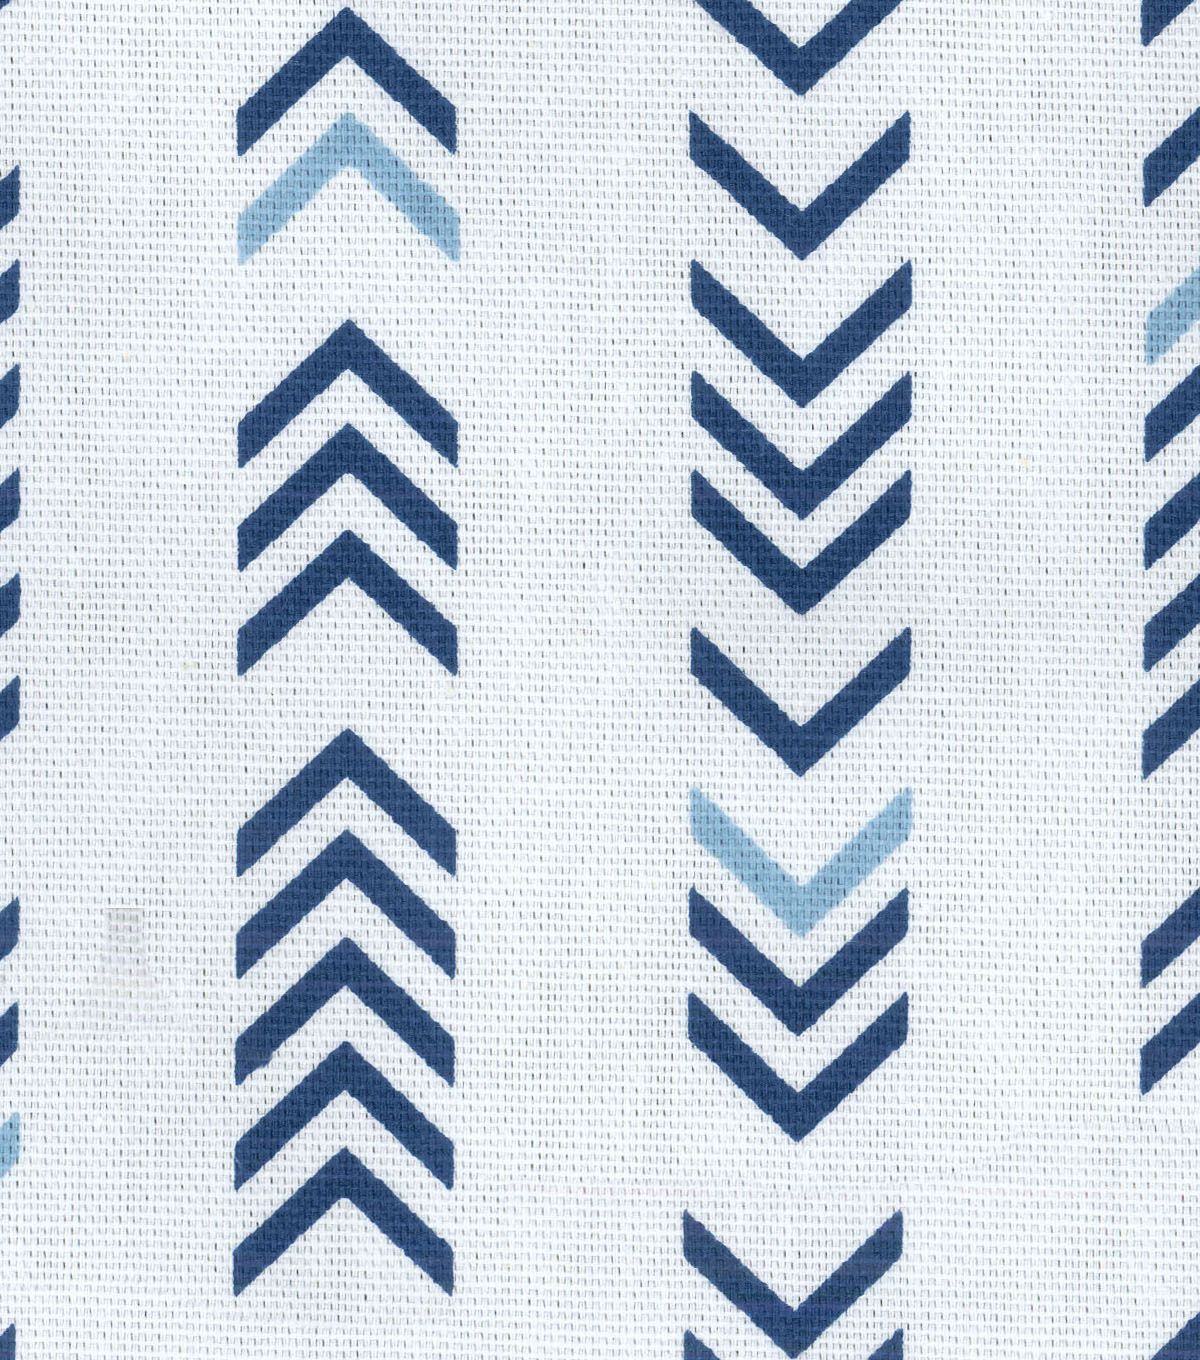 Home Essentials Decor Fabric Up And Down Sail Joann Fabric Decor Decor Essentials Decor